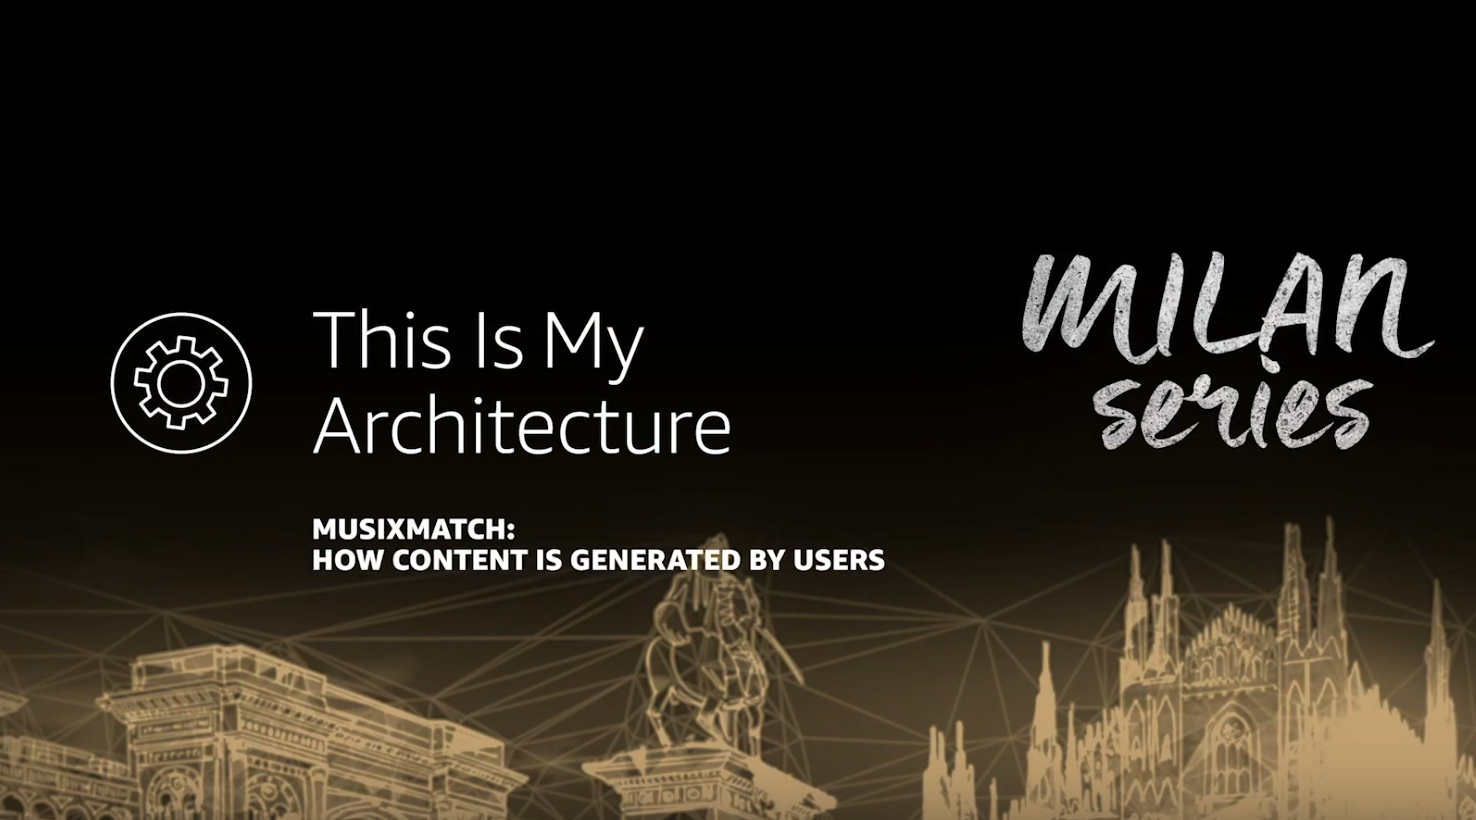 Musixmatch: How Content is Generated by Users (Italian)